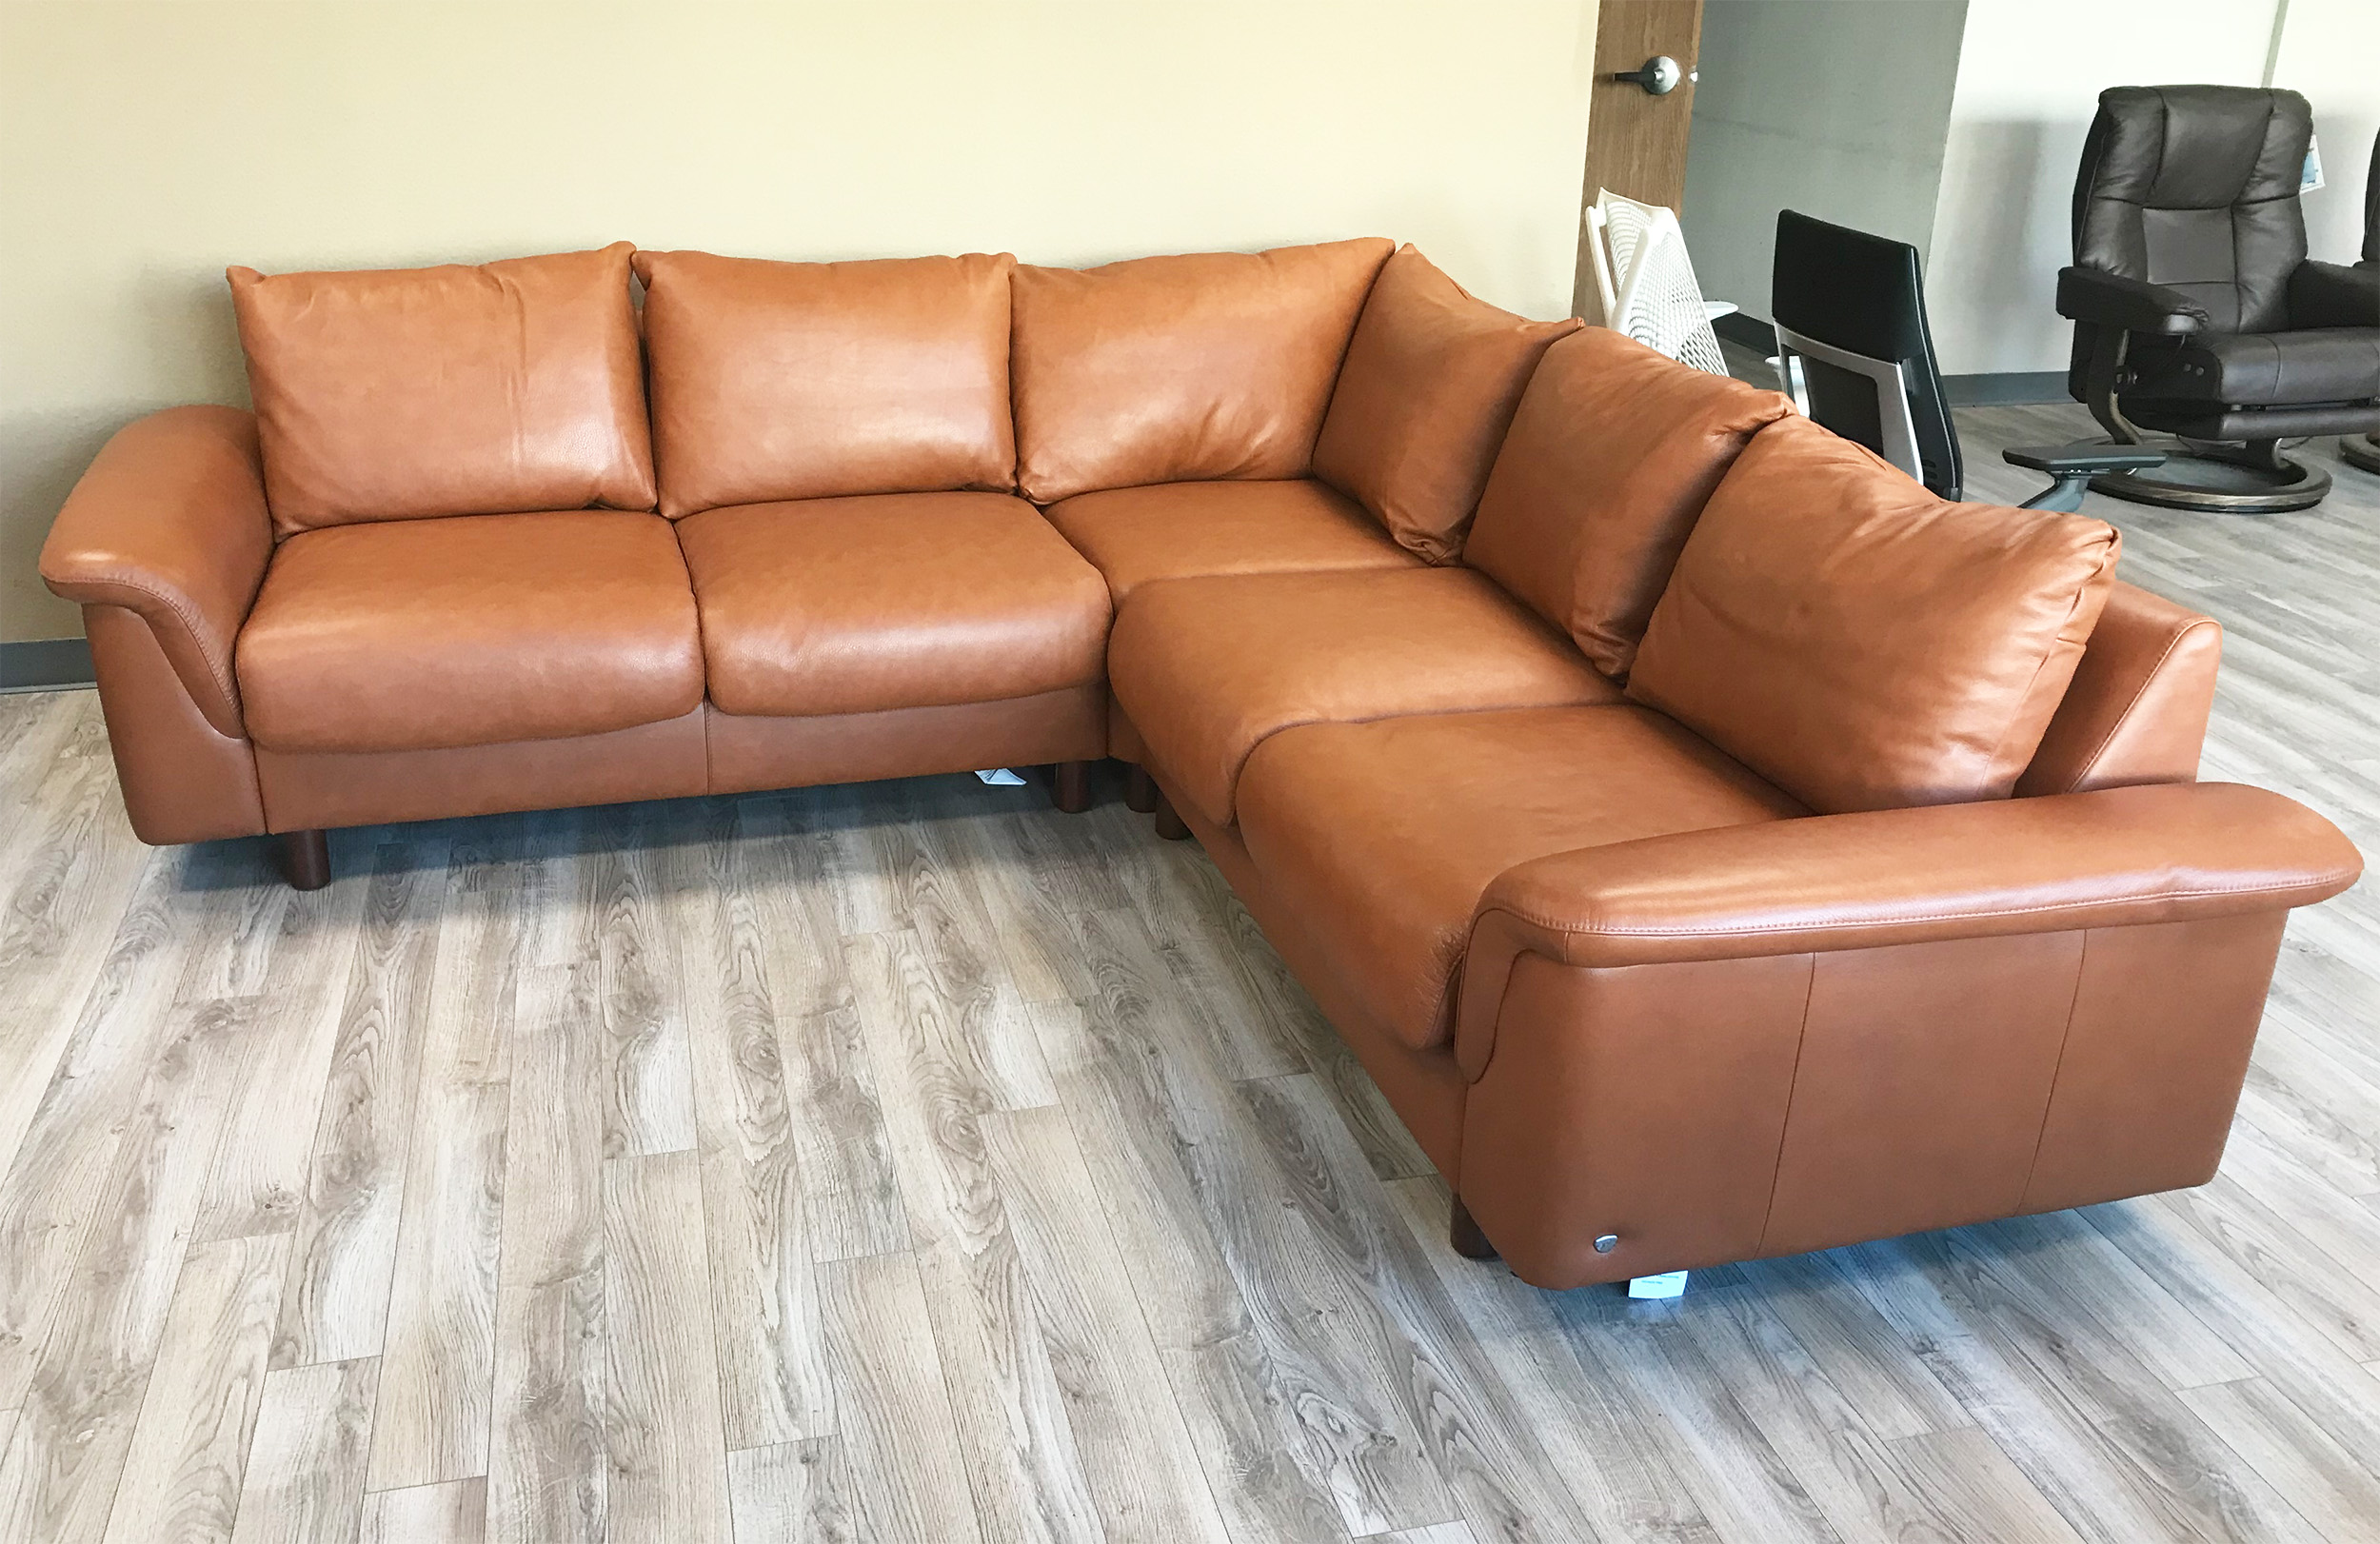 Full Size of Stressless Arion Sofa Review Furniture List Couch Ebay Wave Kleinanzeigen Sale Used Australia Nz E300 6 Seat Sectional With Longseat In Royalin Sofa Stressless Sofa